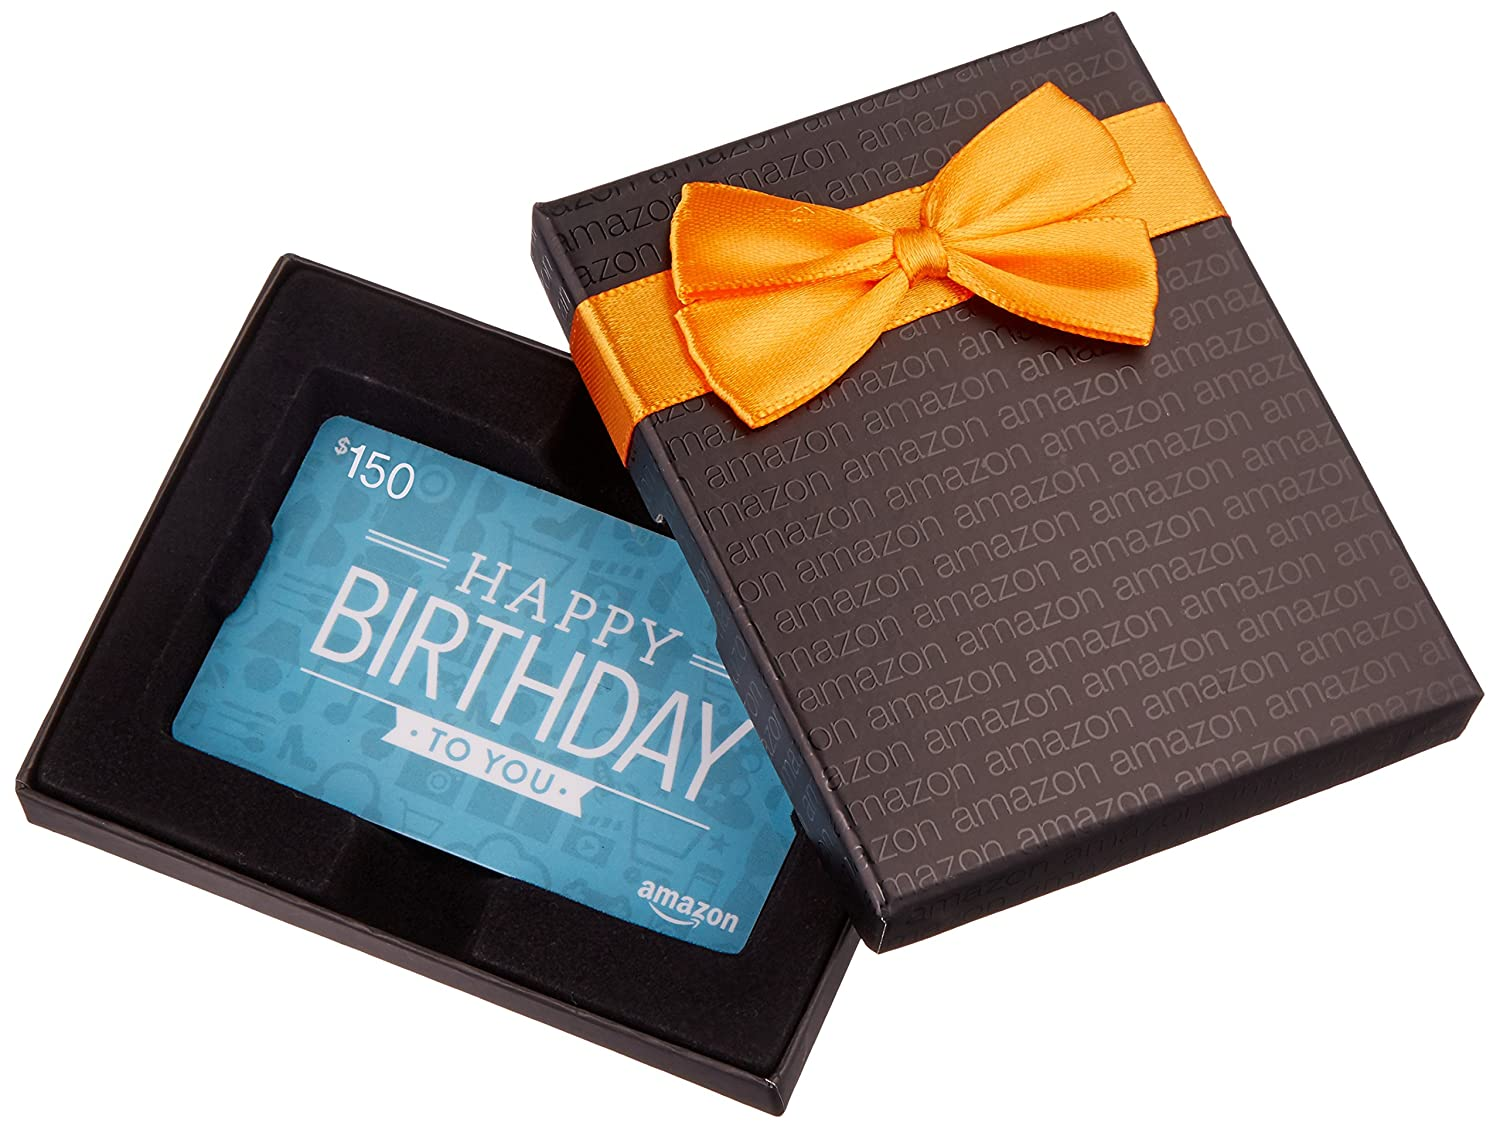 .com Gift Card in a Black Gift Box (Various Card Designs) VariableDenomination